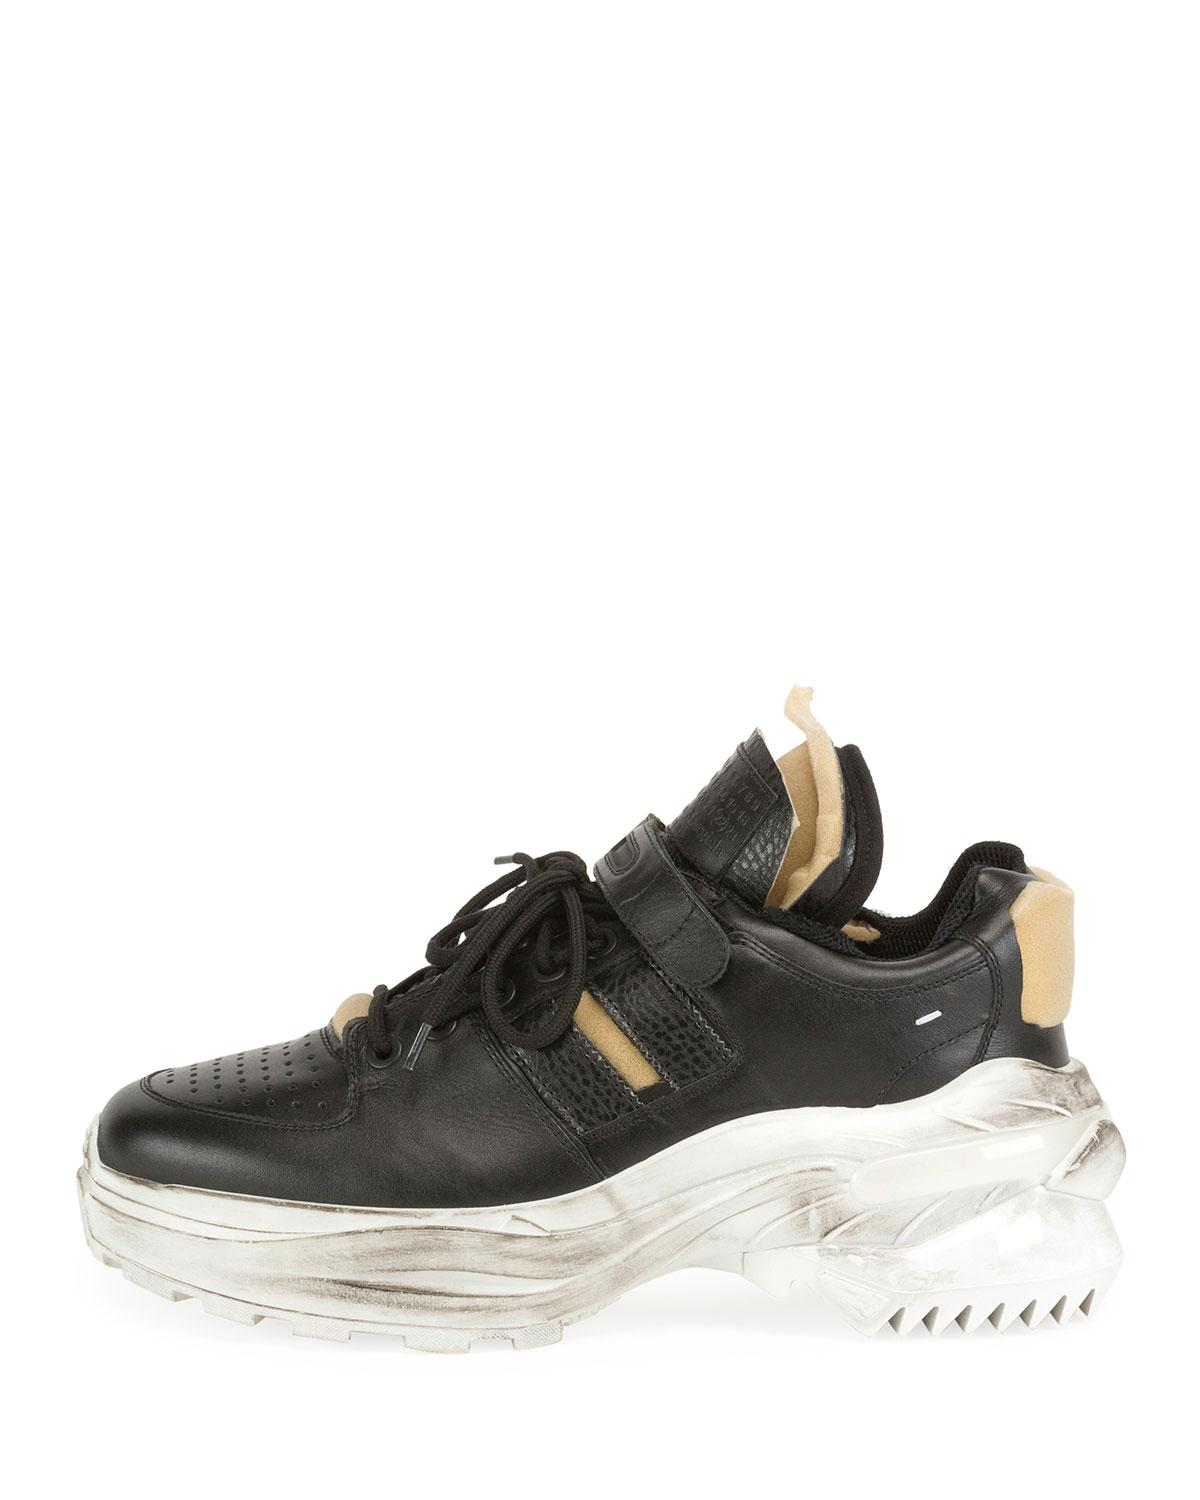 half off cc969 b6882 Maison Margiela Men s Retrofit Leather Trainer Sneakers With Dirty  Treatment in Black for Men - Lyst